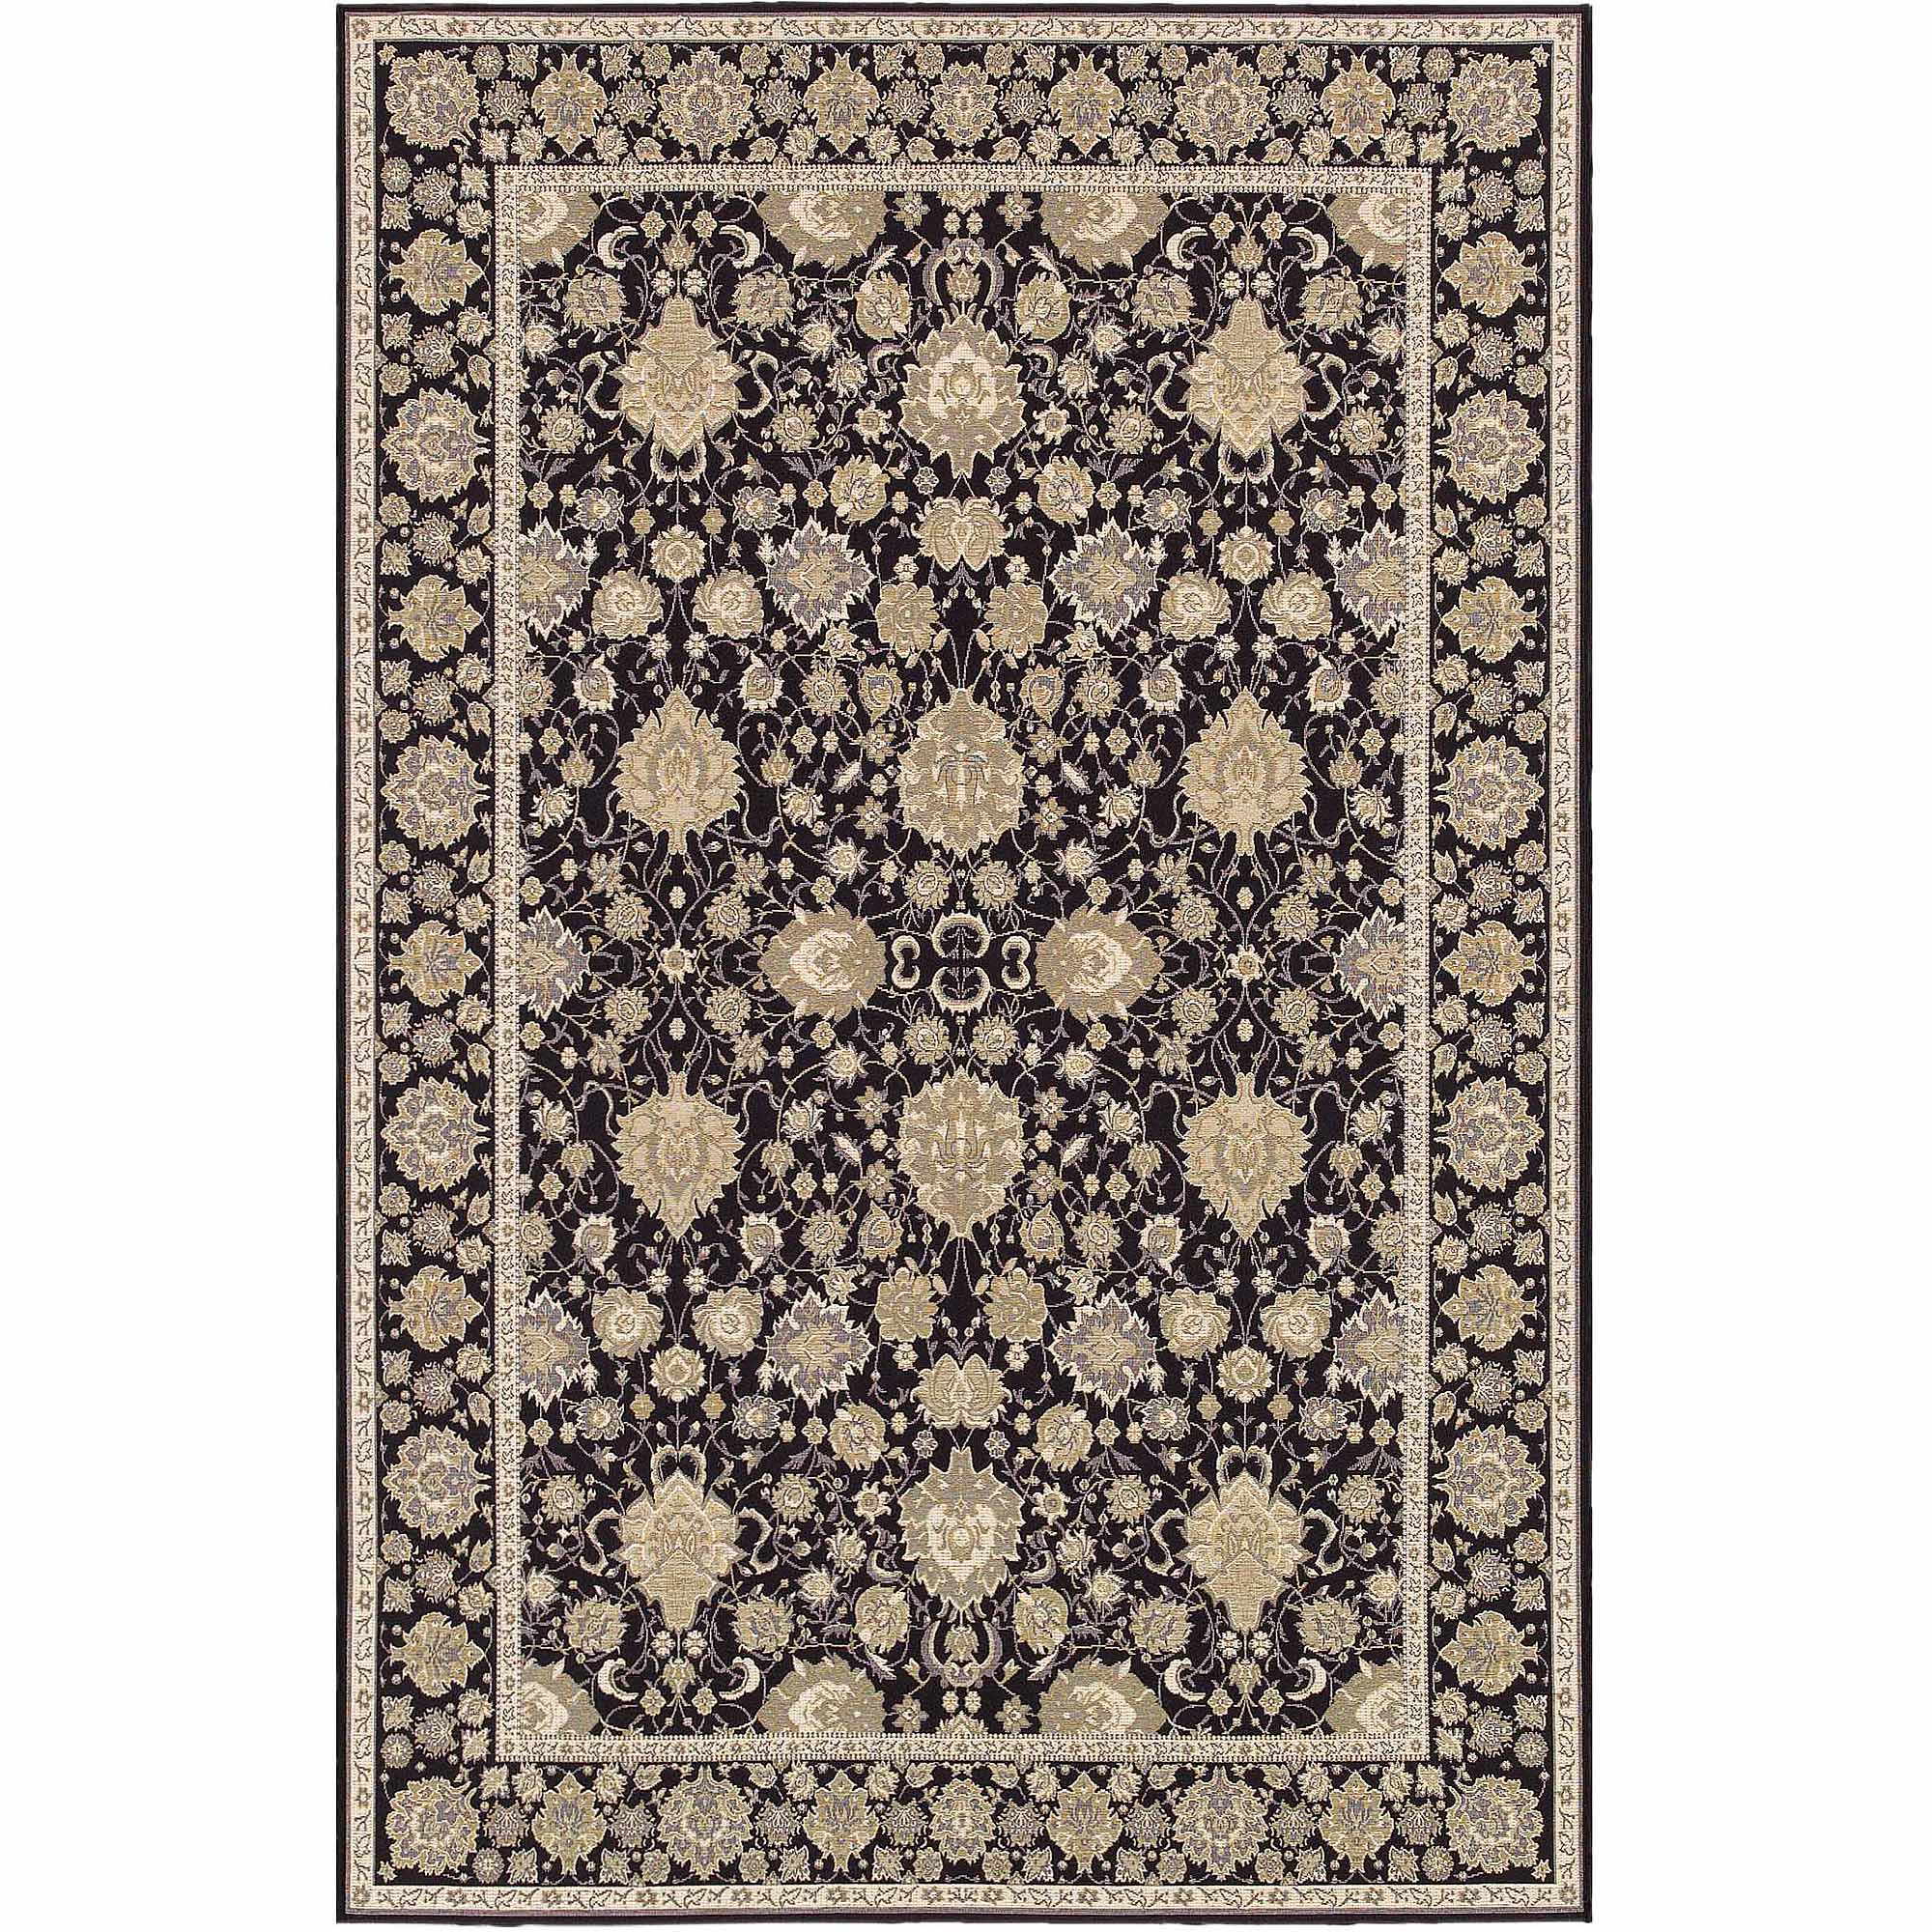 Couristan Dolce Pompano Rug, Black/Beige